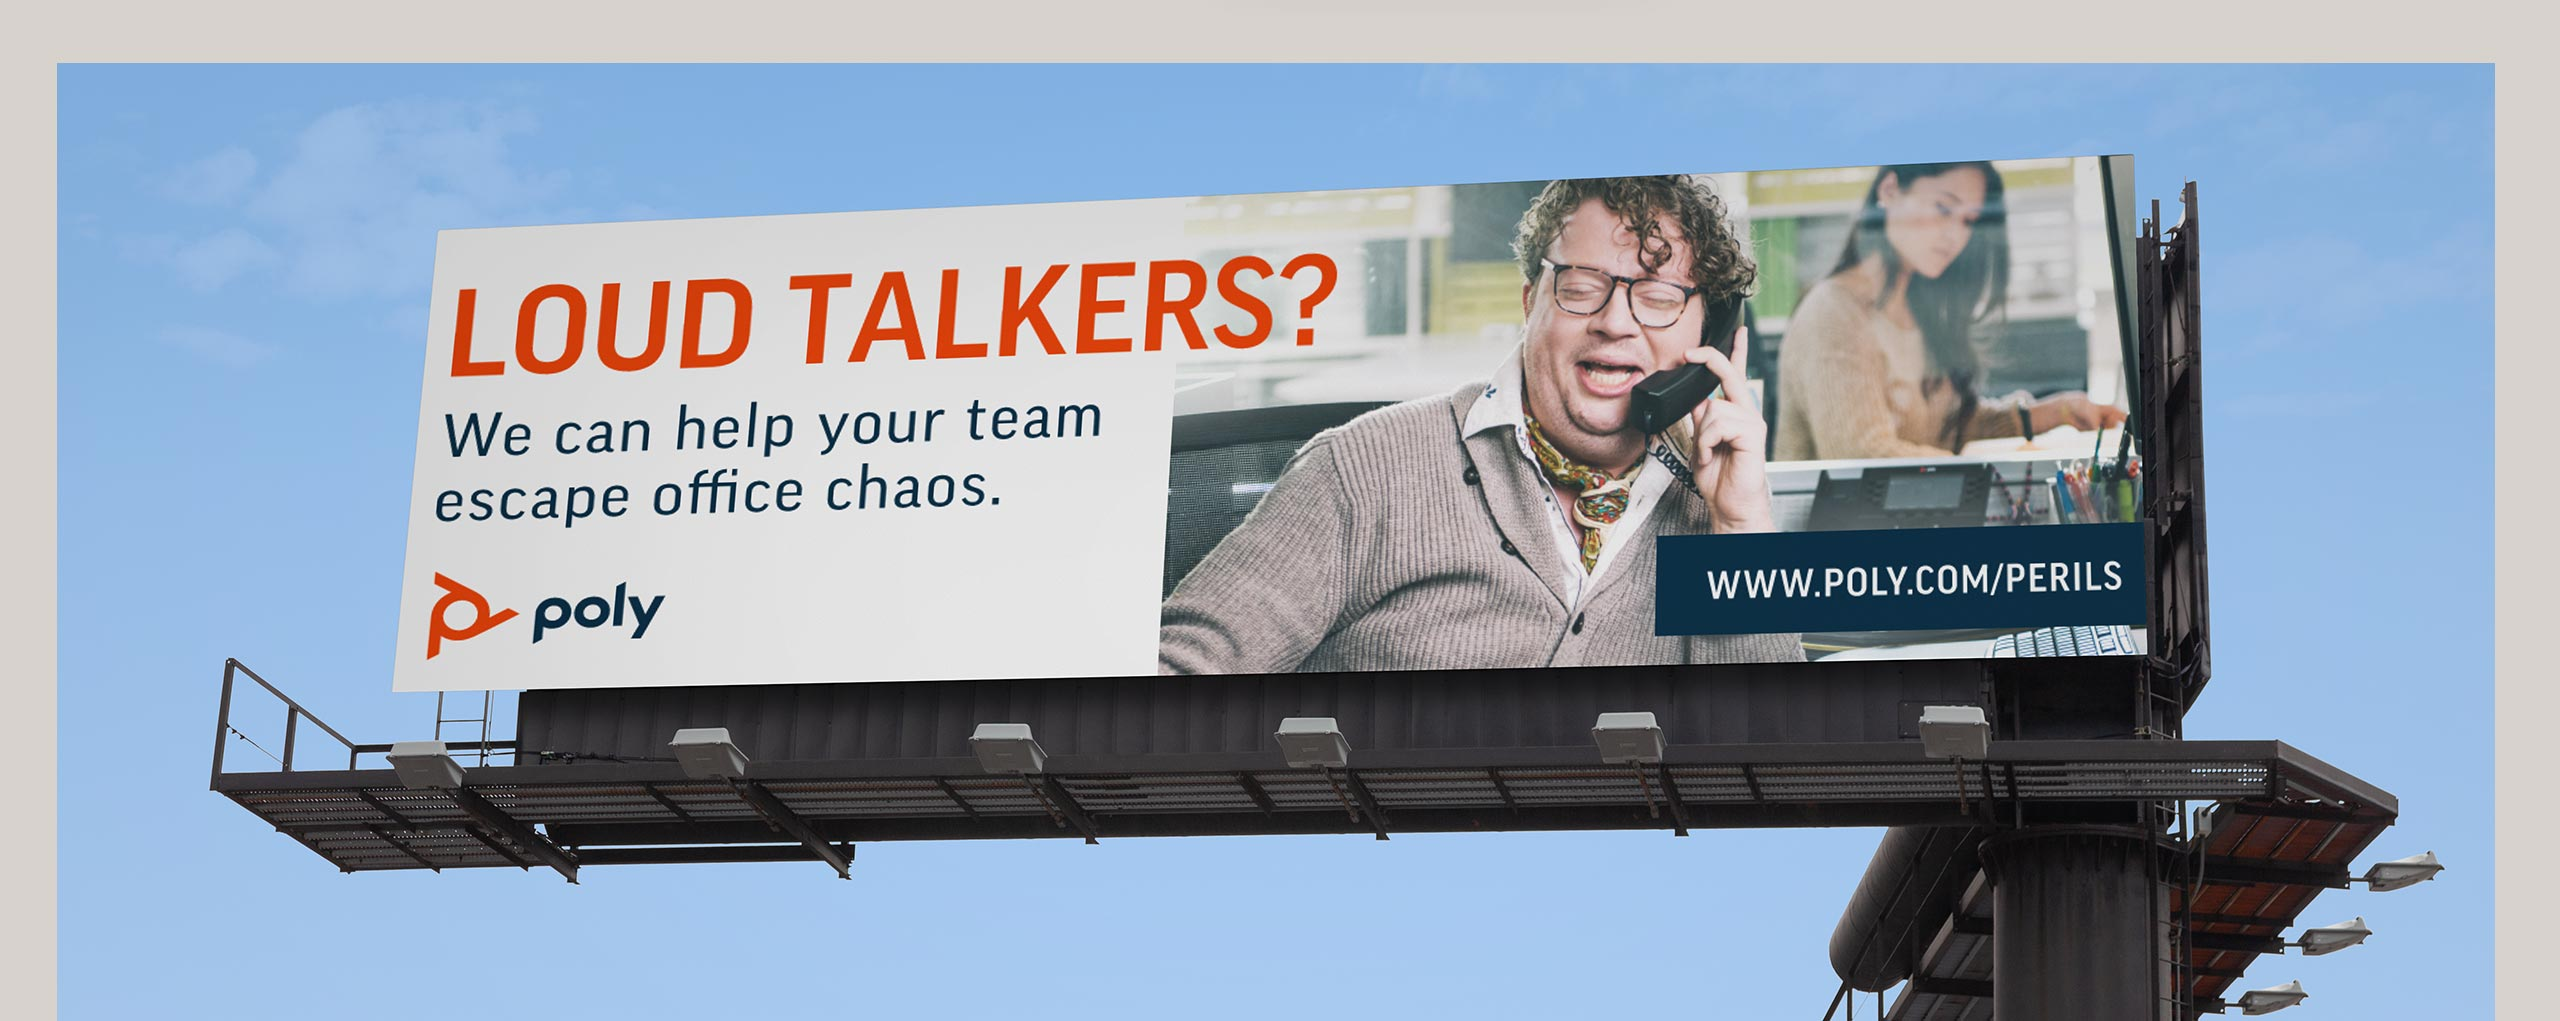 Peril's of the Open Office Campaign Billboard